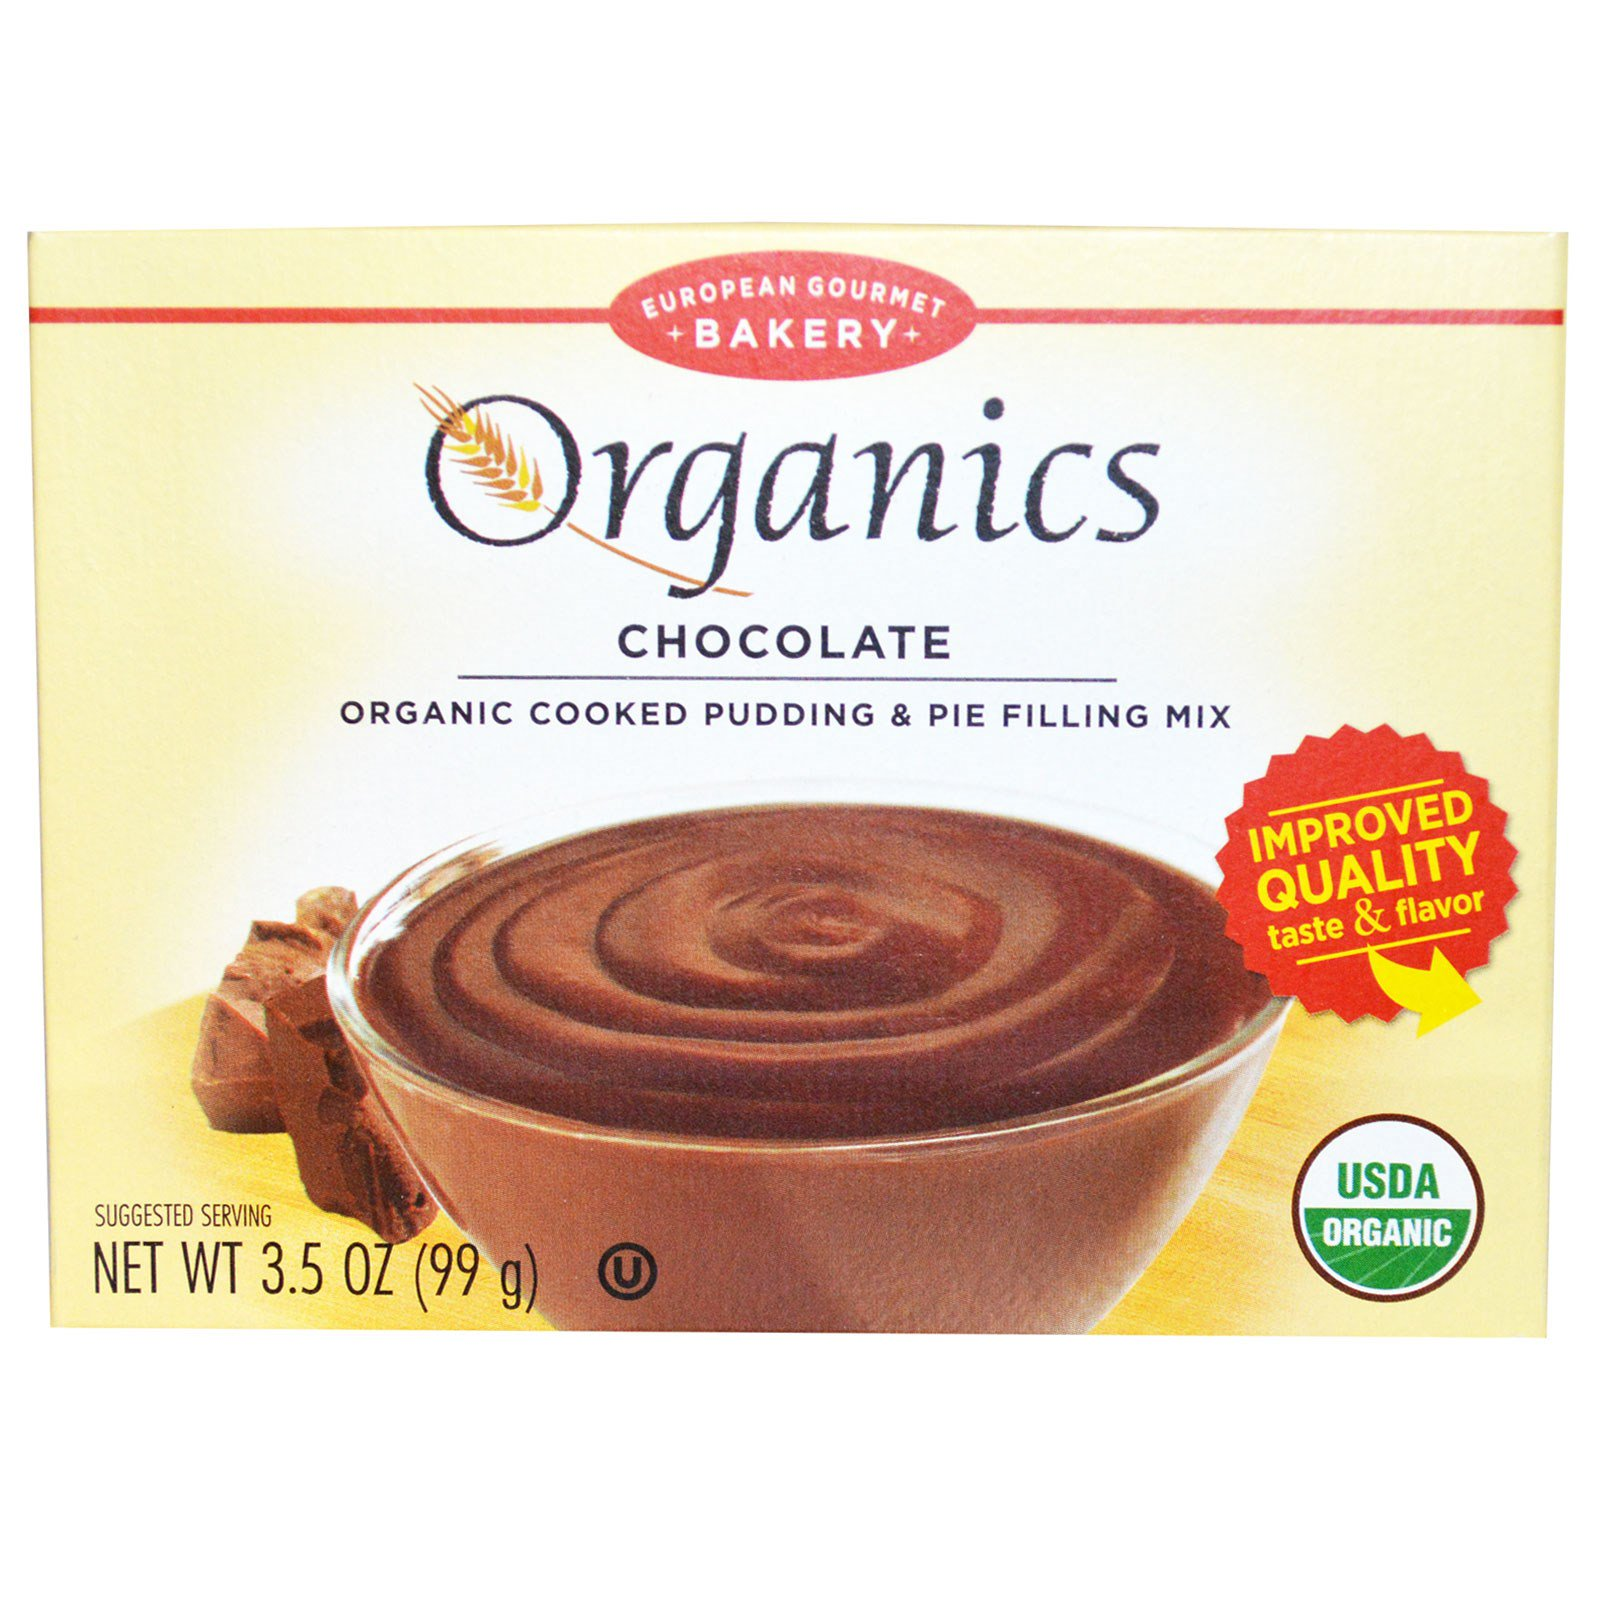 European Gourmet Bakery Organics Cooked Pudding Pie Filling Mix